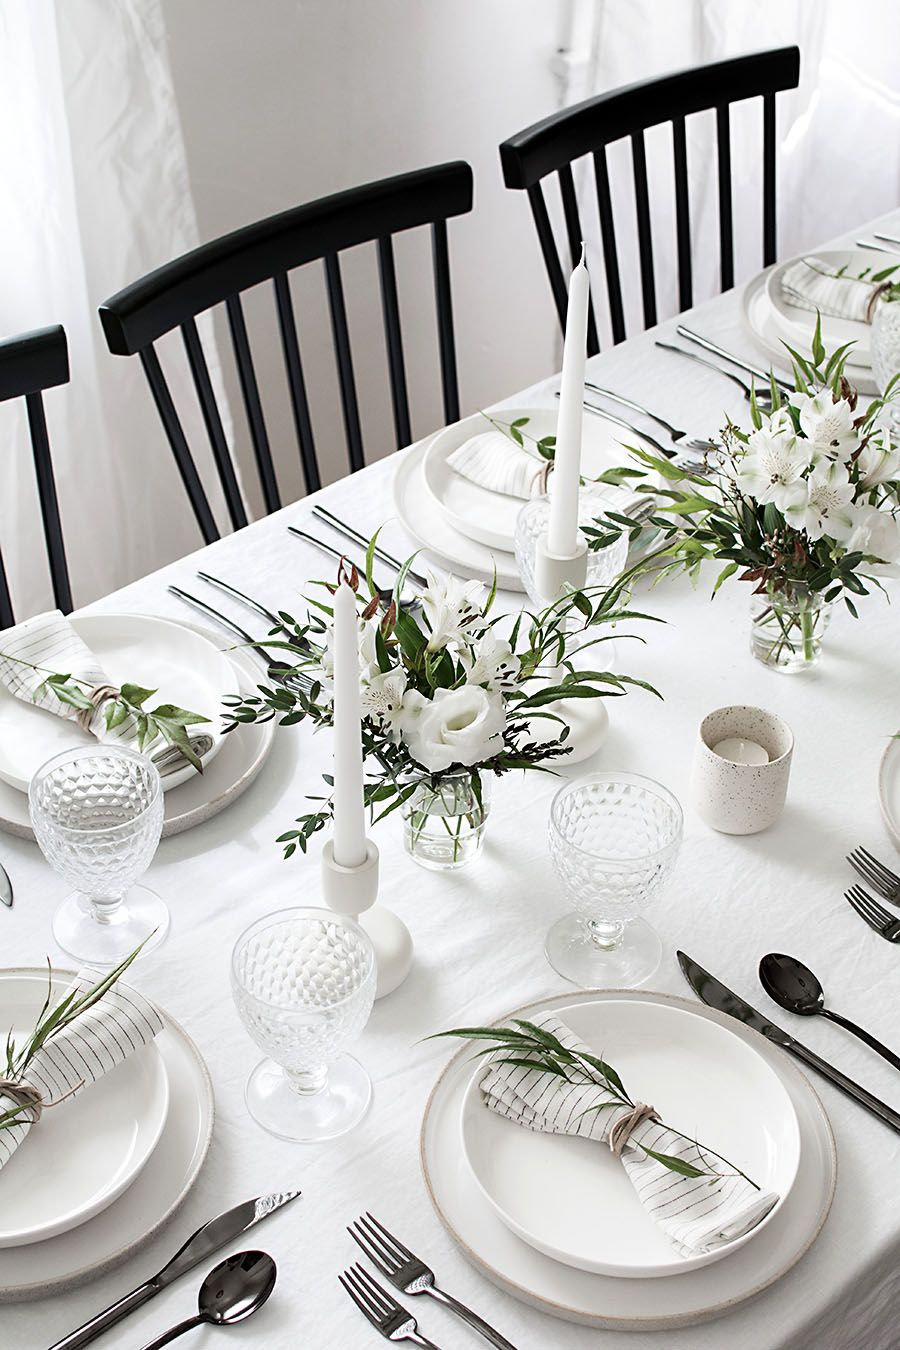 Easy ideas for creating a modern minimal table setting. & Easy ideas for creating a modern minimal table setting. | Fiestas en ...